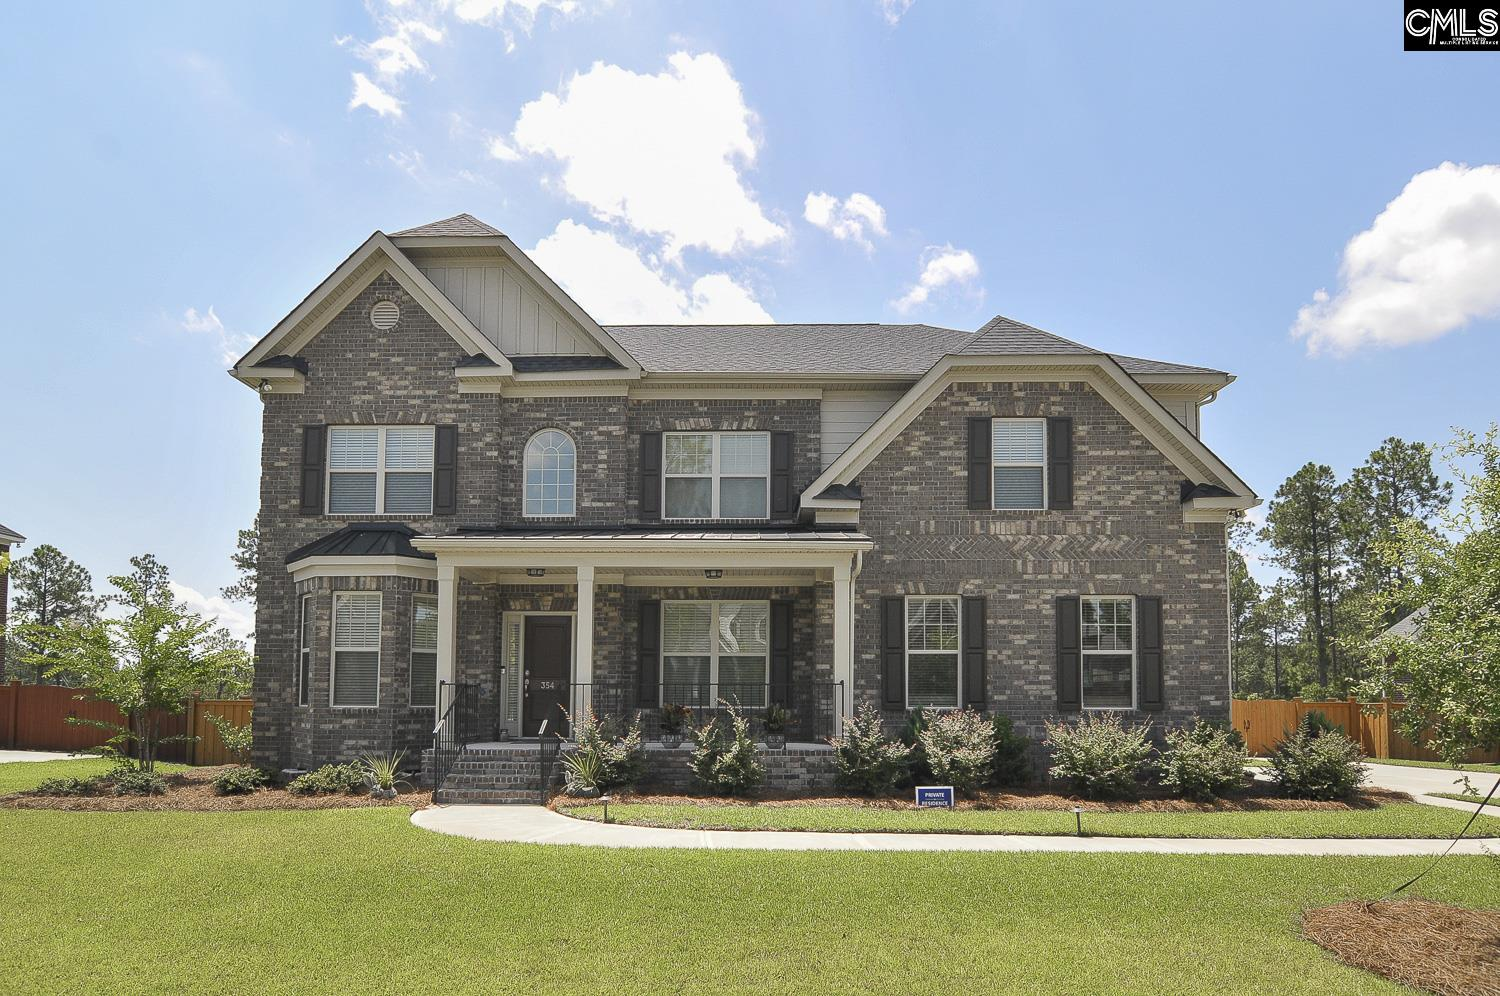 354 Palm Sedge Elgin, SC 29045